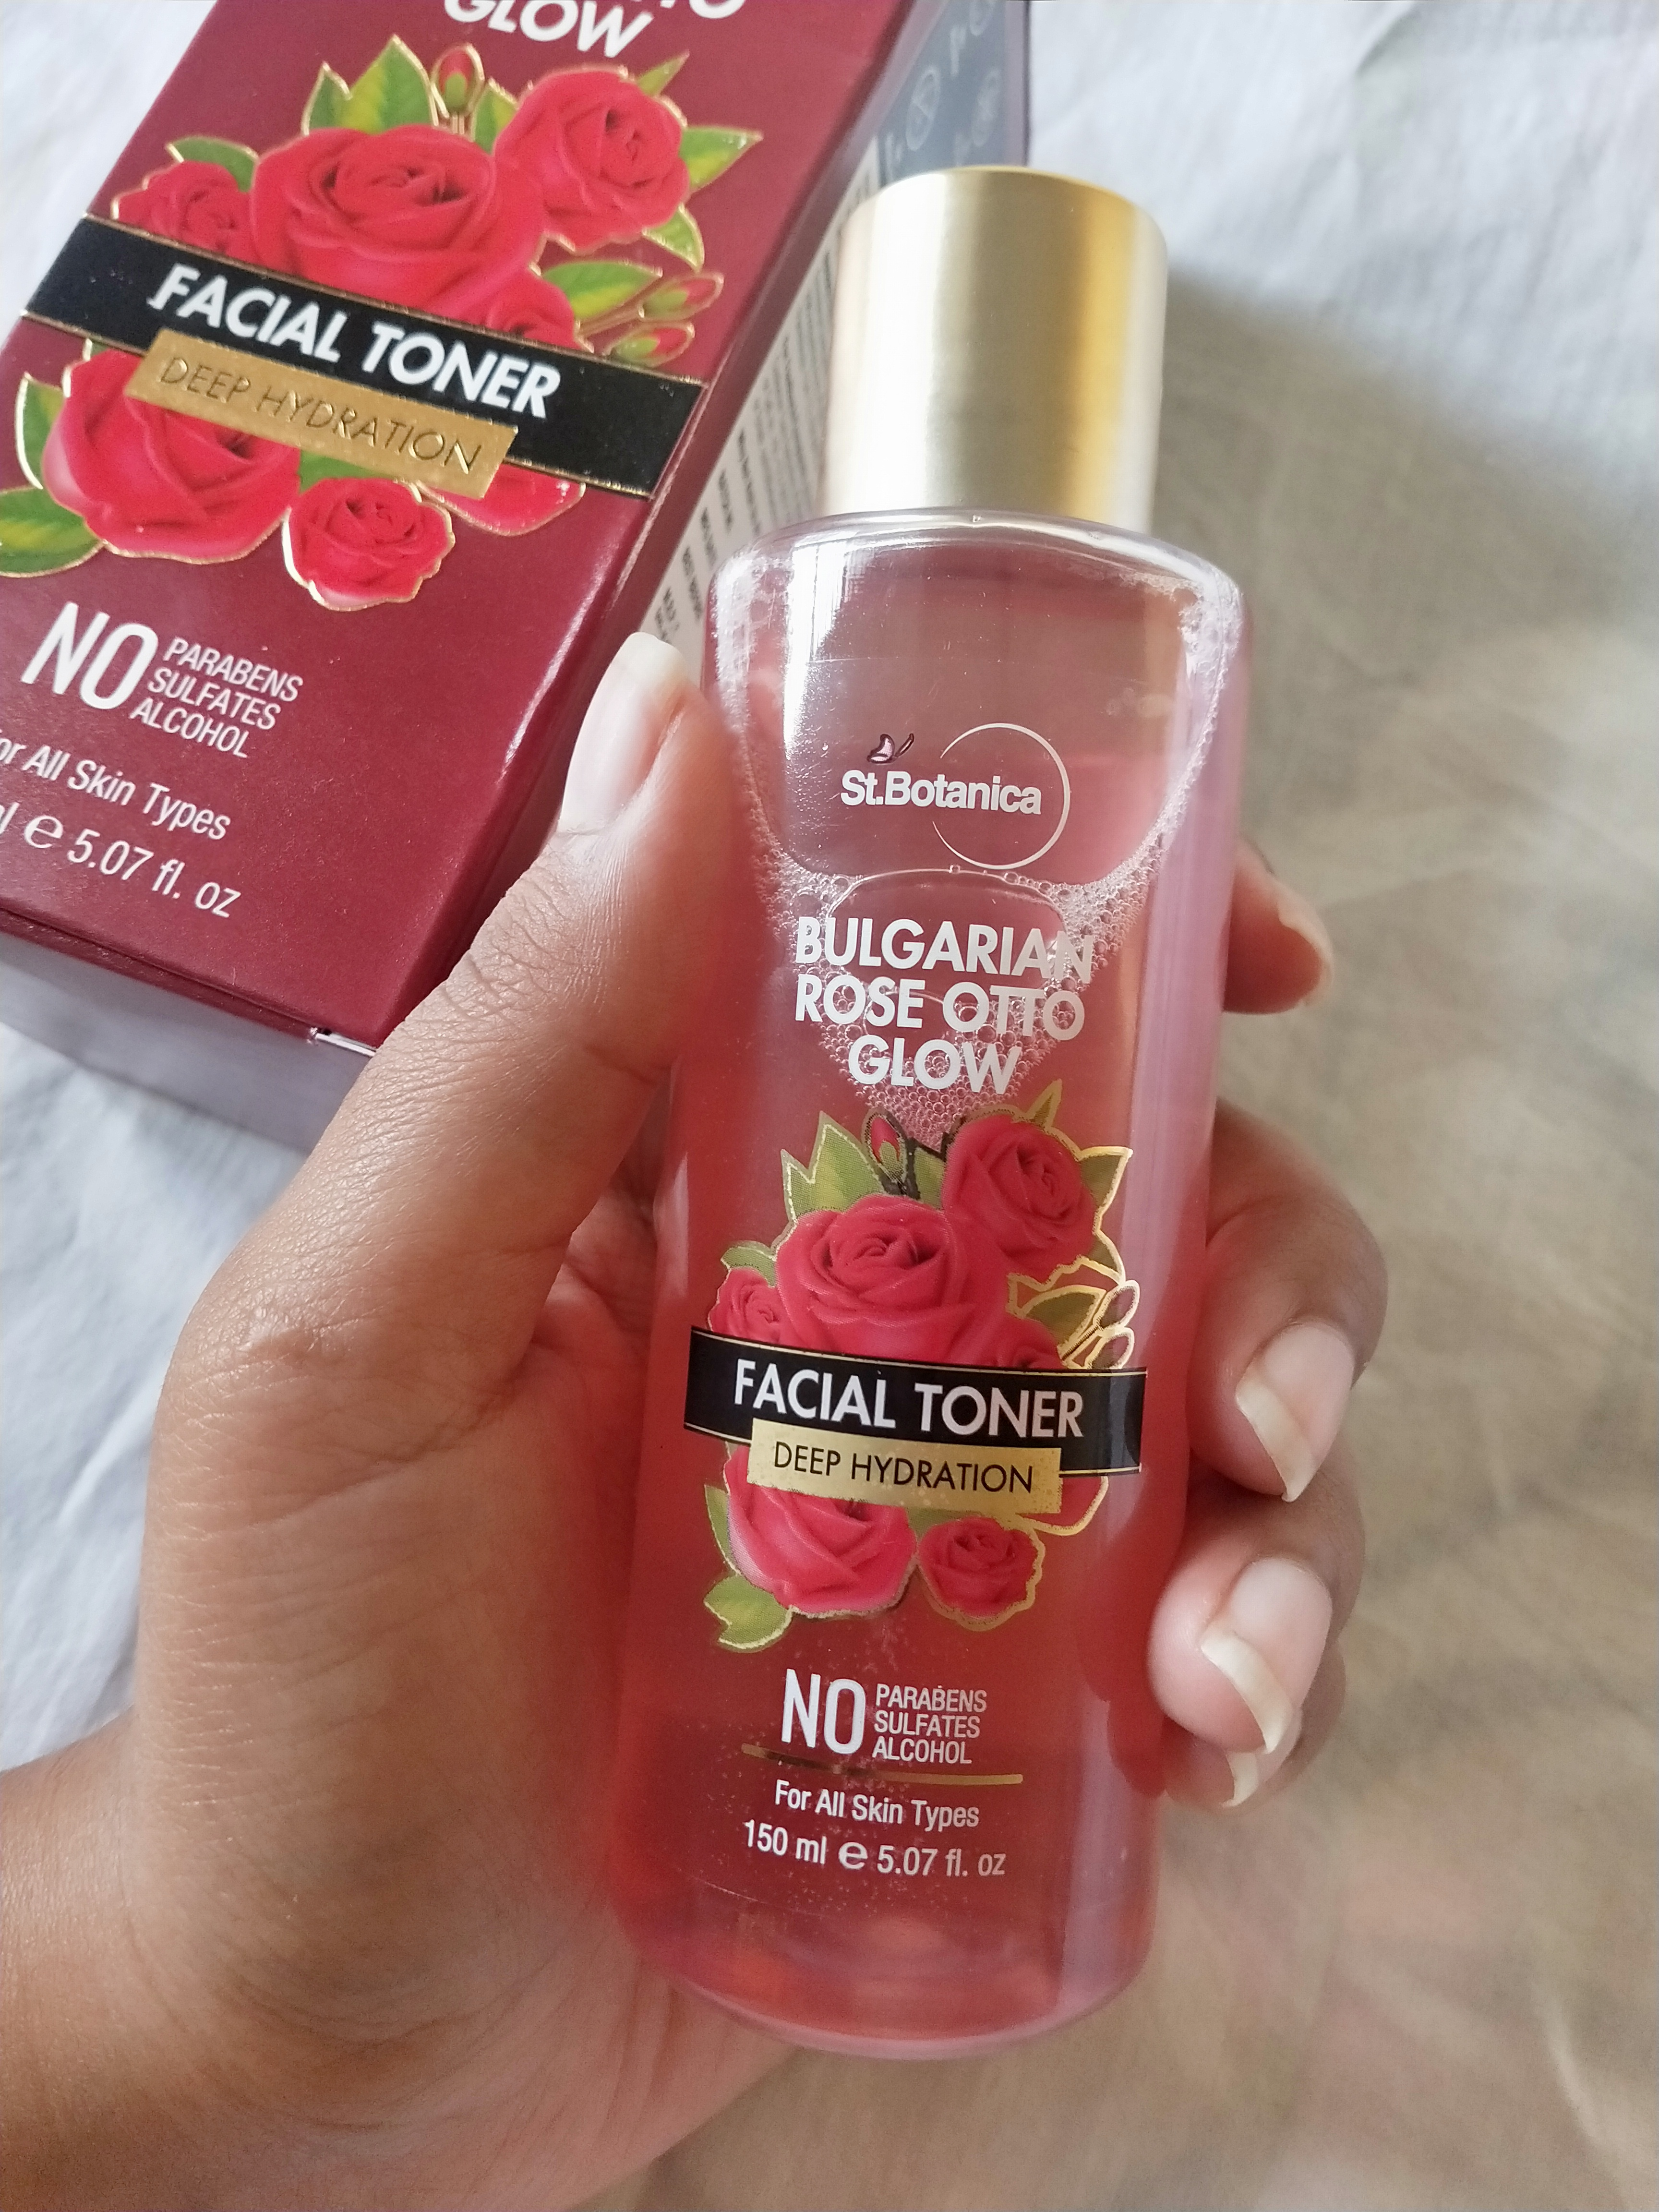 StBotanica Bulgarian Rose Otto Glow Deep Hydration Facial Toner pic 3-Rose toner – good for hydration-By miss_hungry_soul